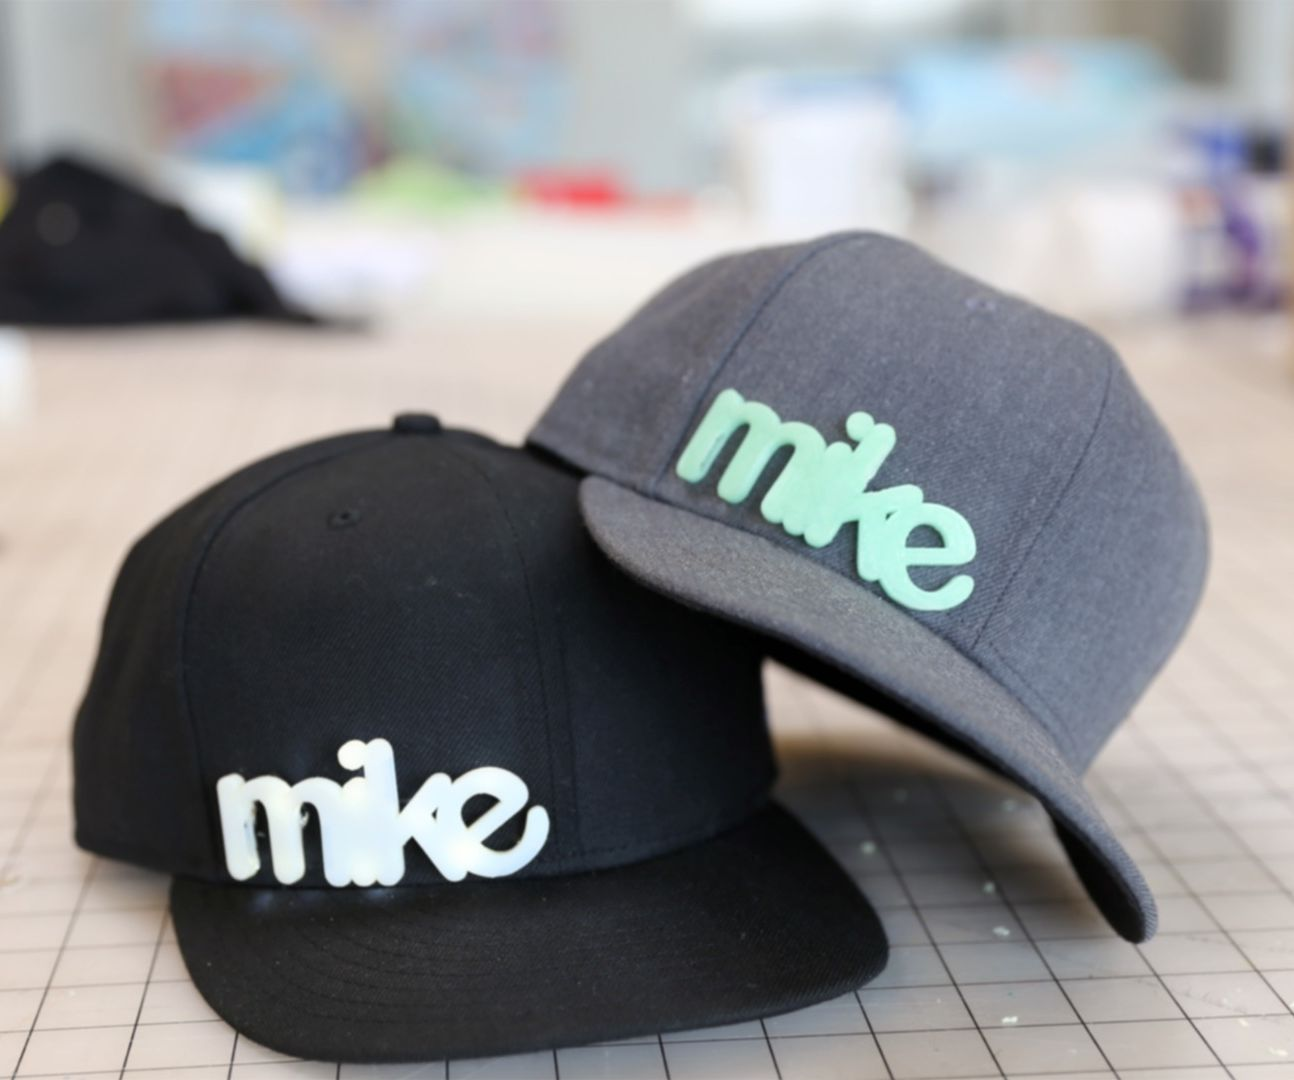 3D printed hat graphics